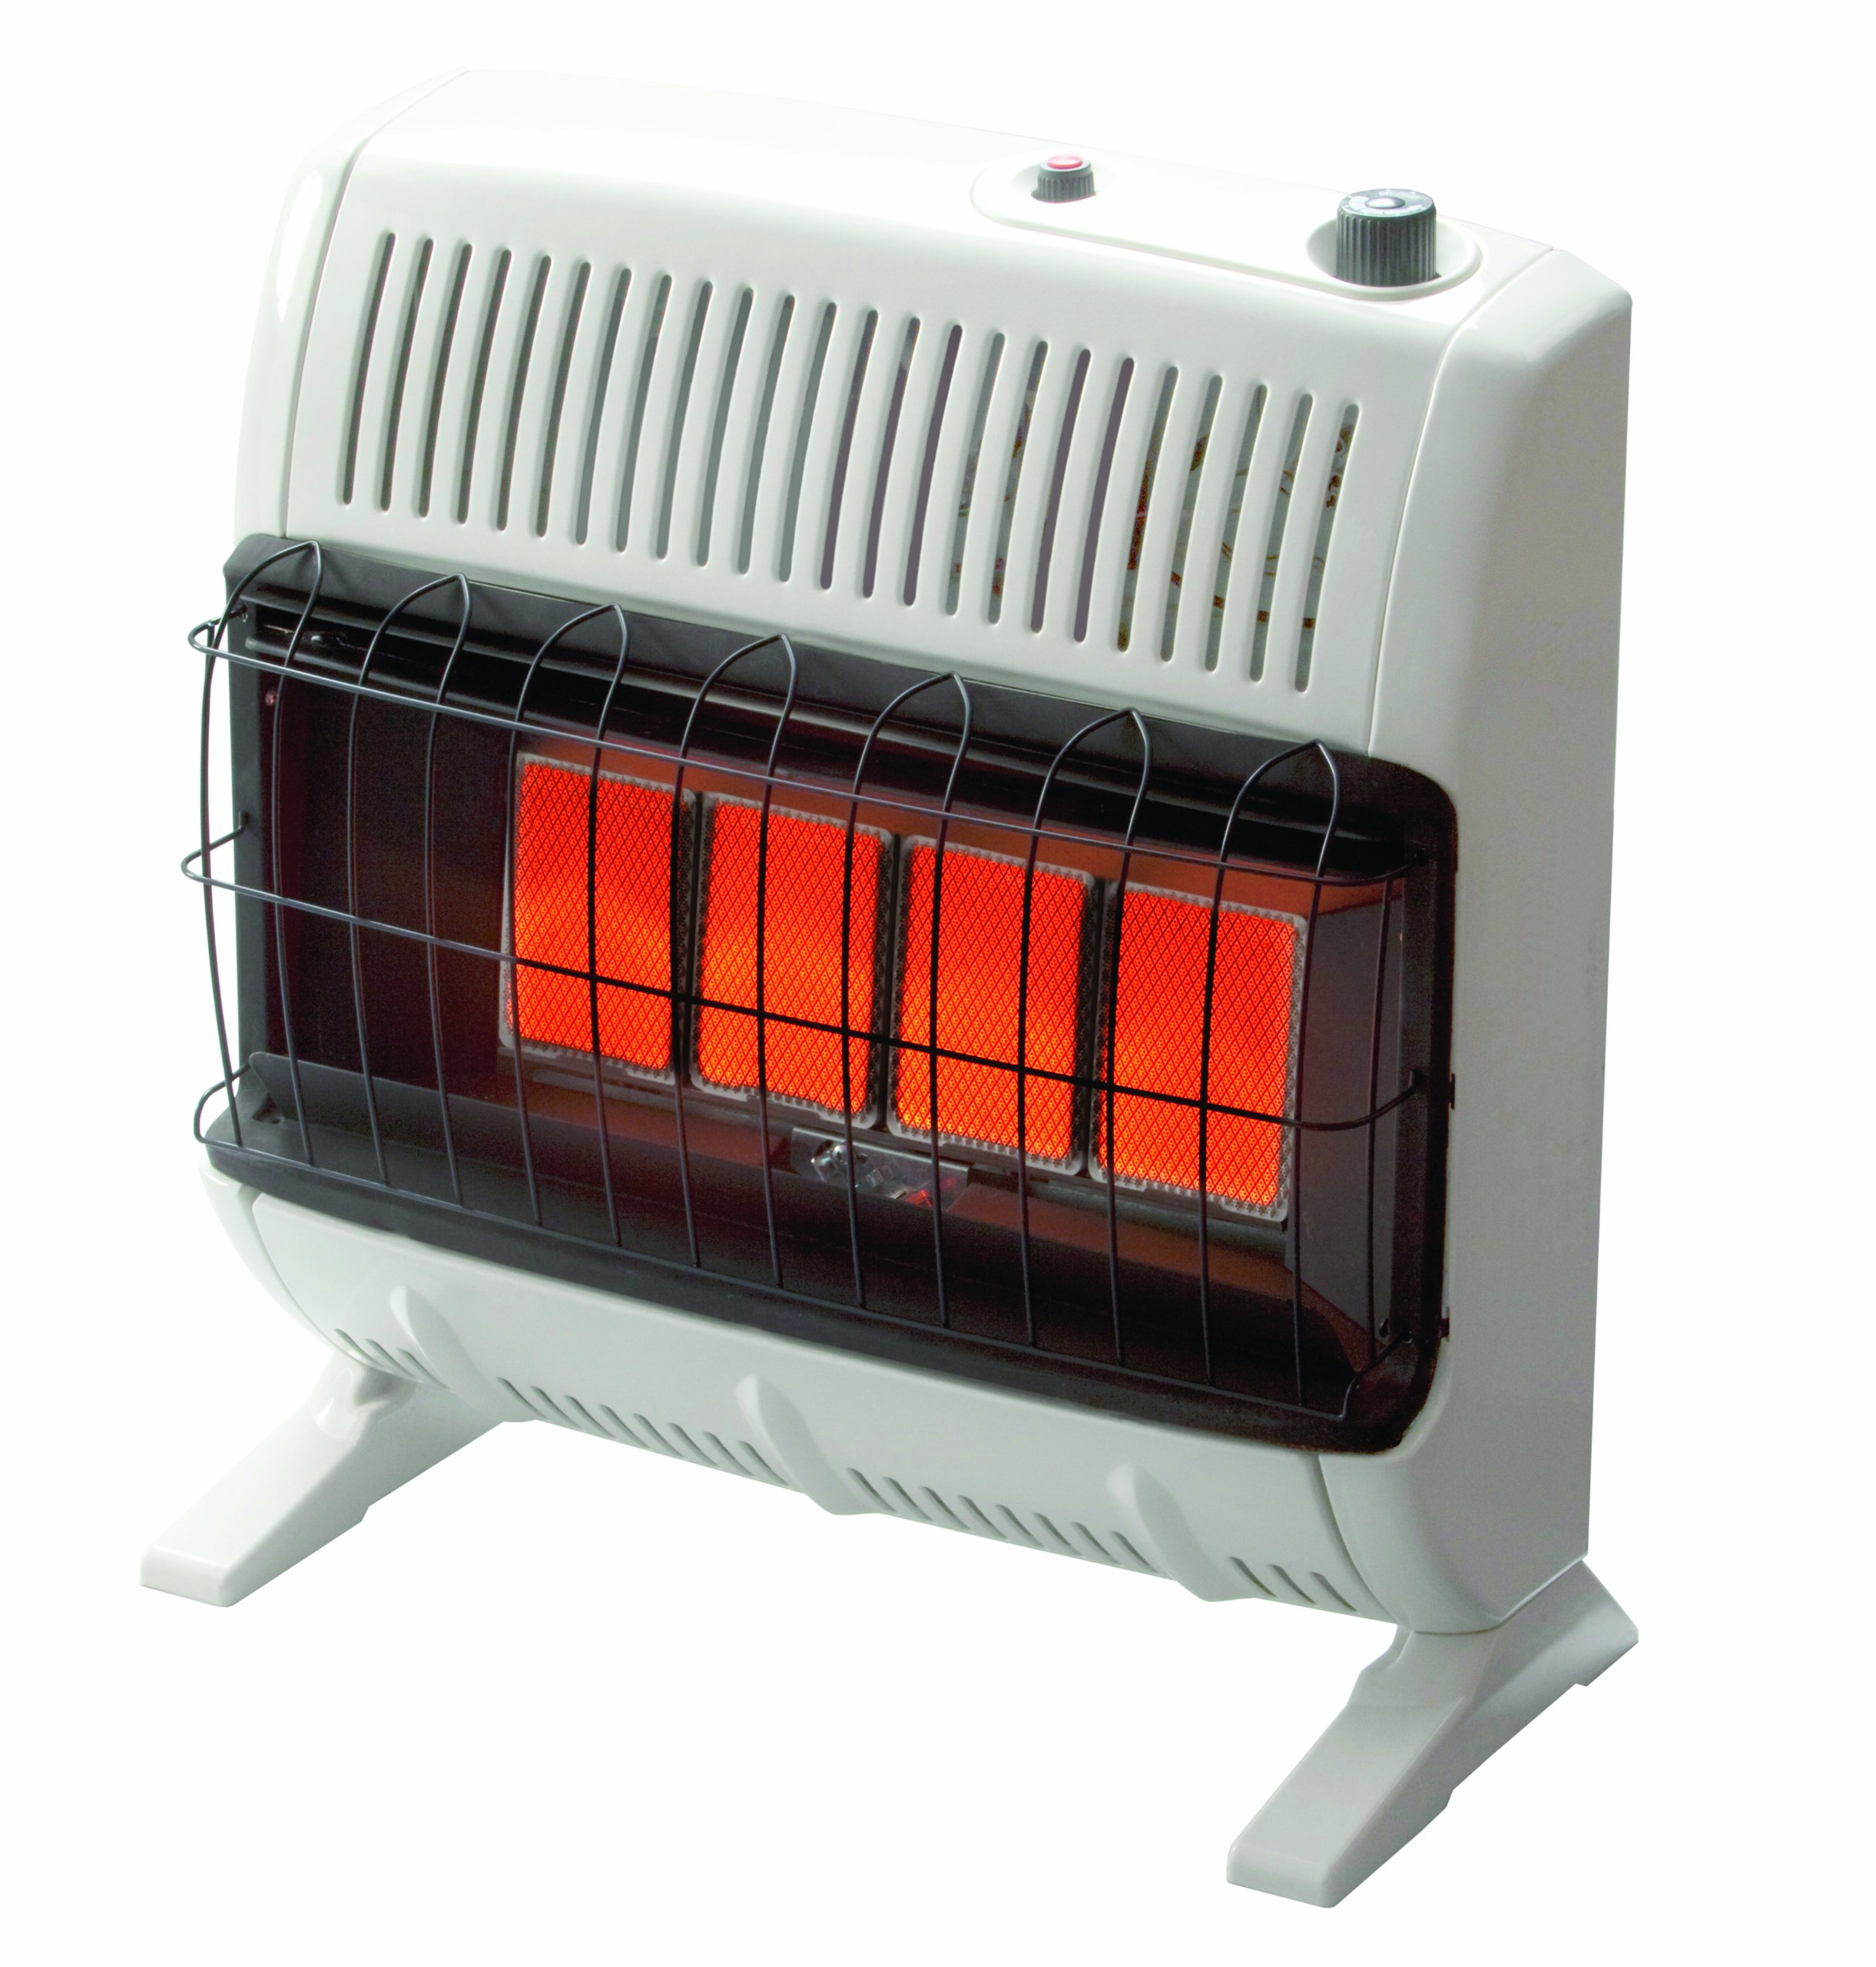 Heatstar By Enerco F156090 Ventfree Infrared Propane Heater with Thermostat HSVFR30LPBT, 30K